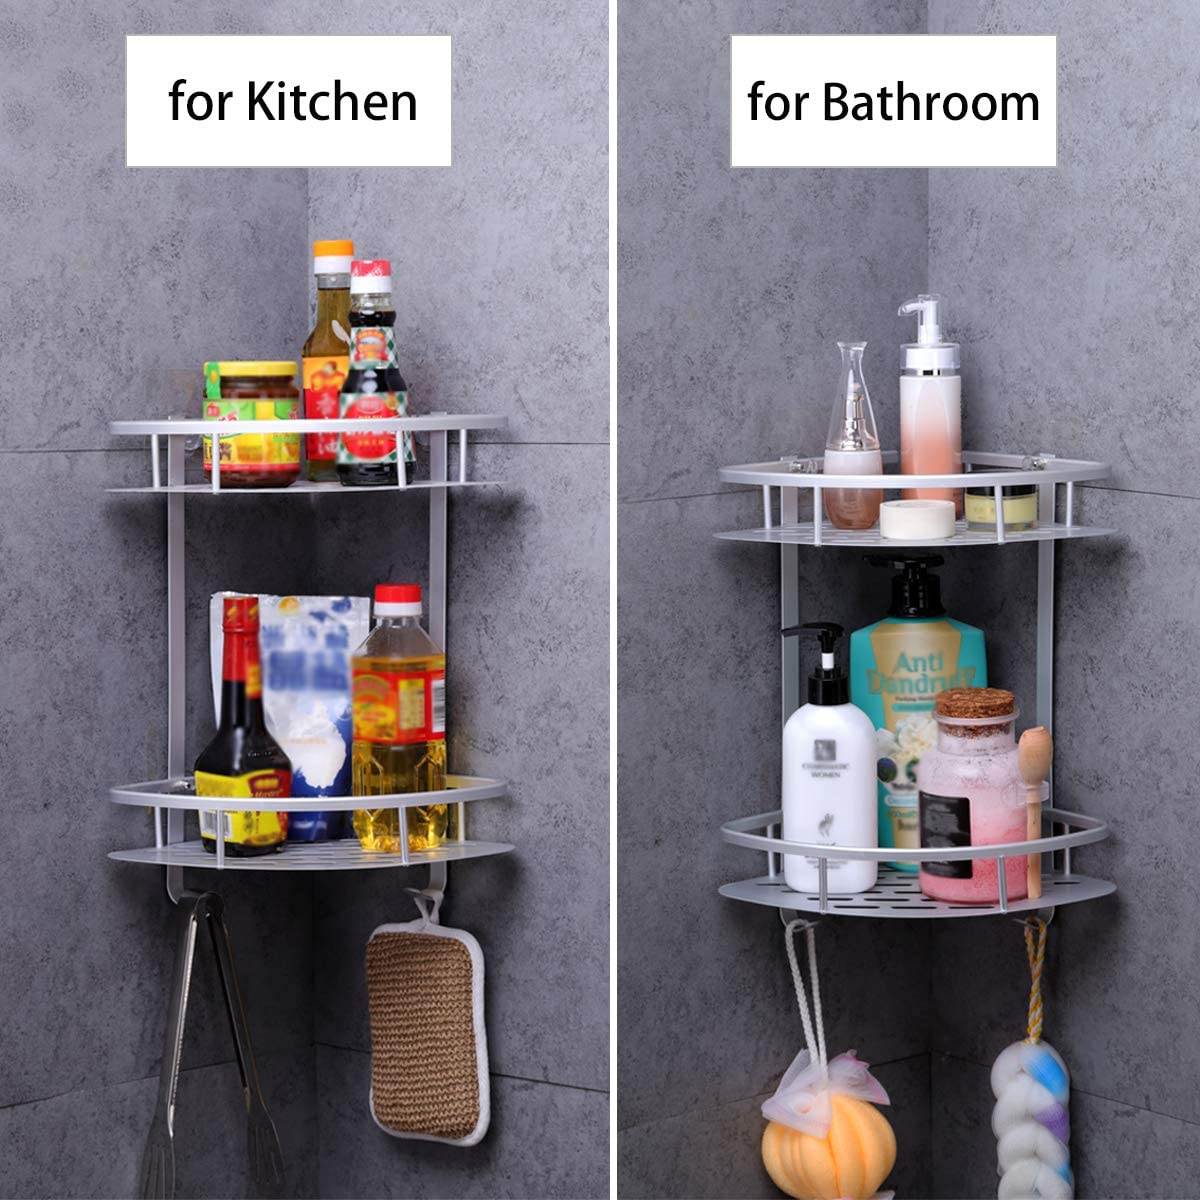 Aluminum Rustproof Adhesive Shower Shelf Kitchen Storage Basket with Hanging Hooks Black Yeegout Bathroom Corner Shelves No Drill